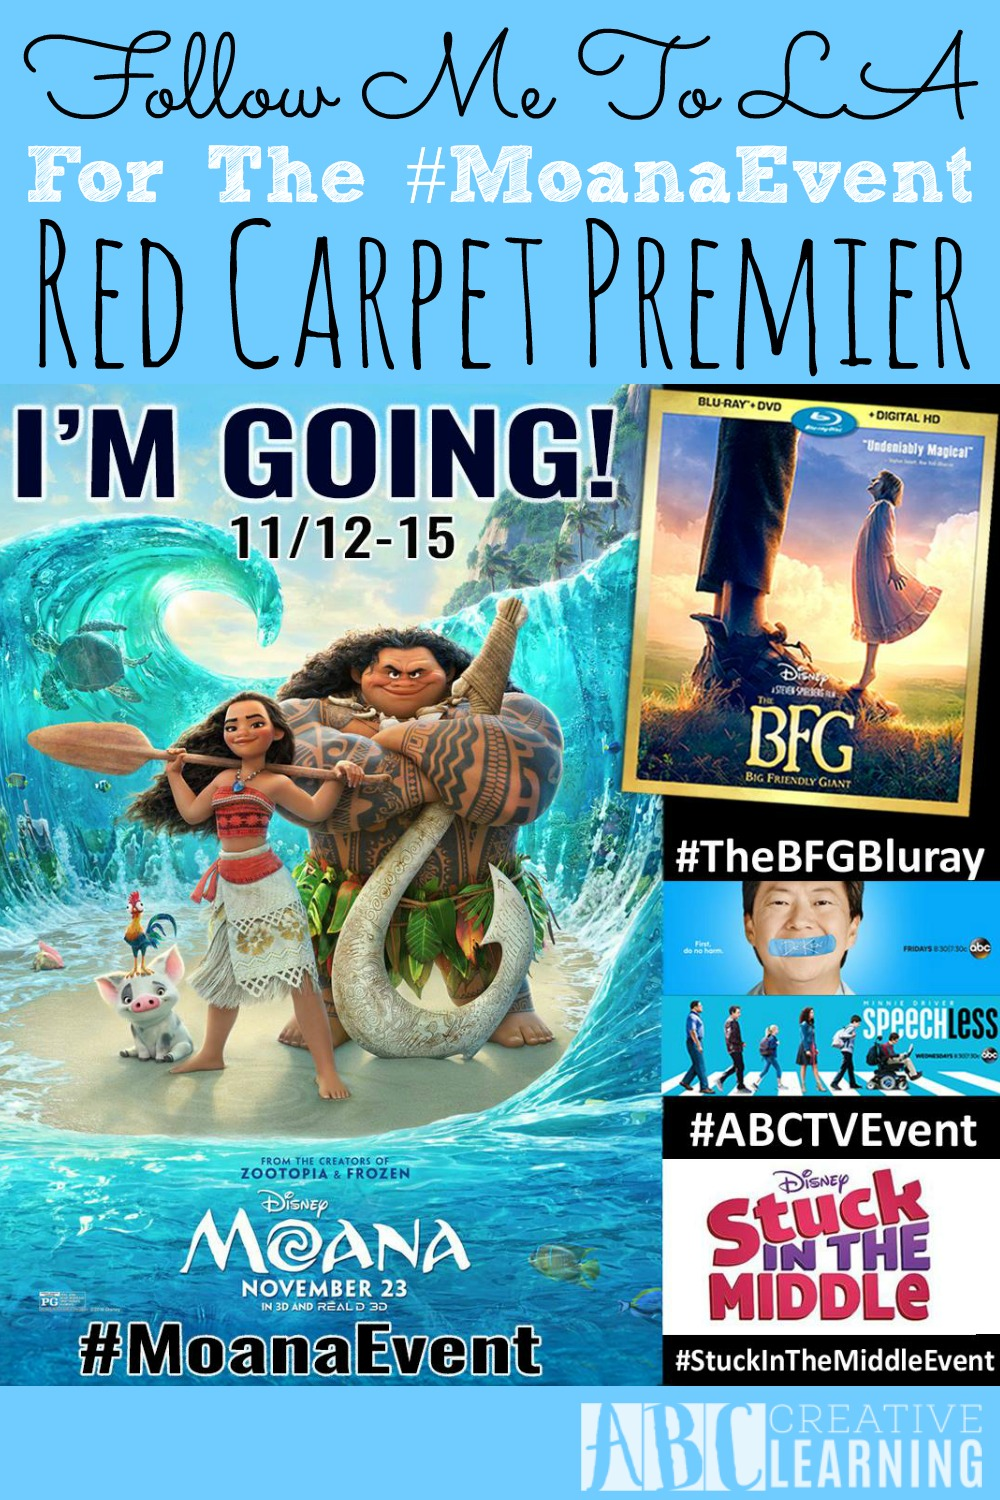 follow-me-to-la-for-the-moanaevent-red-carpet-premier